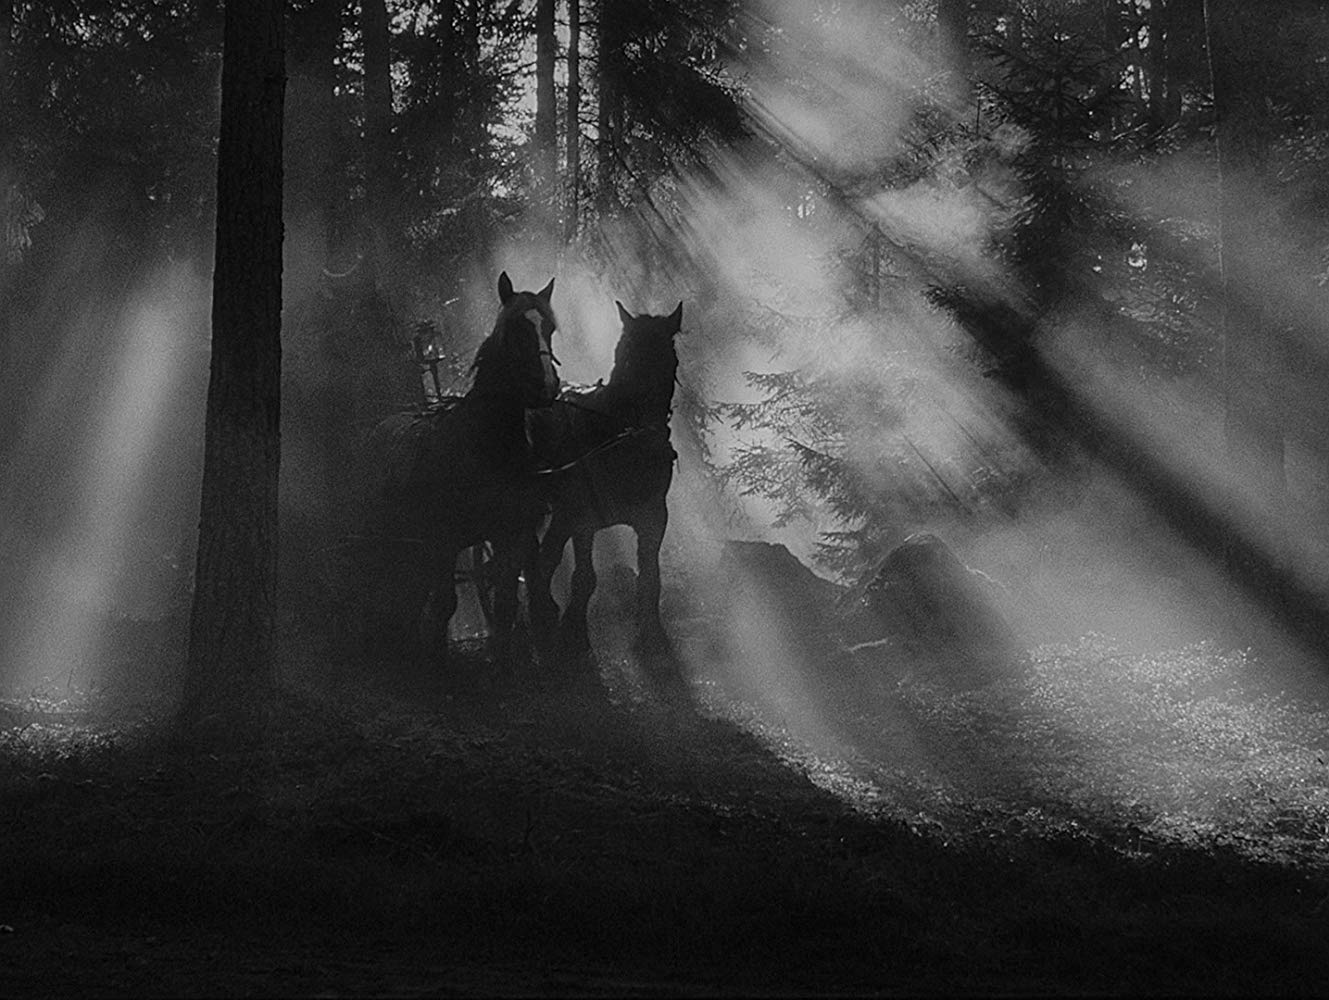 The incredibly haunted opening carriage journey through the forest in The Magician (1958)